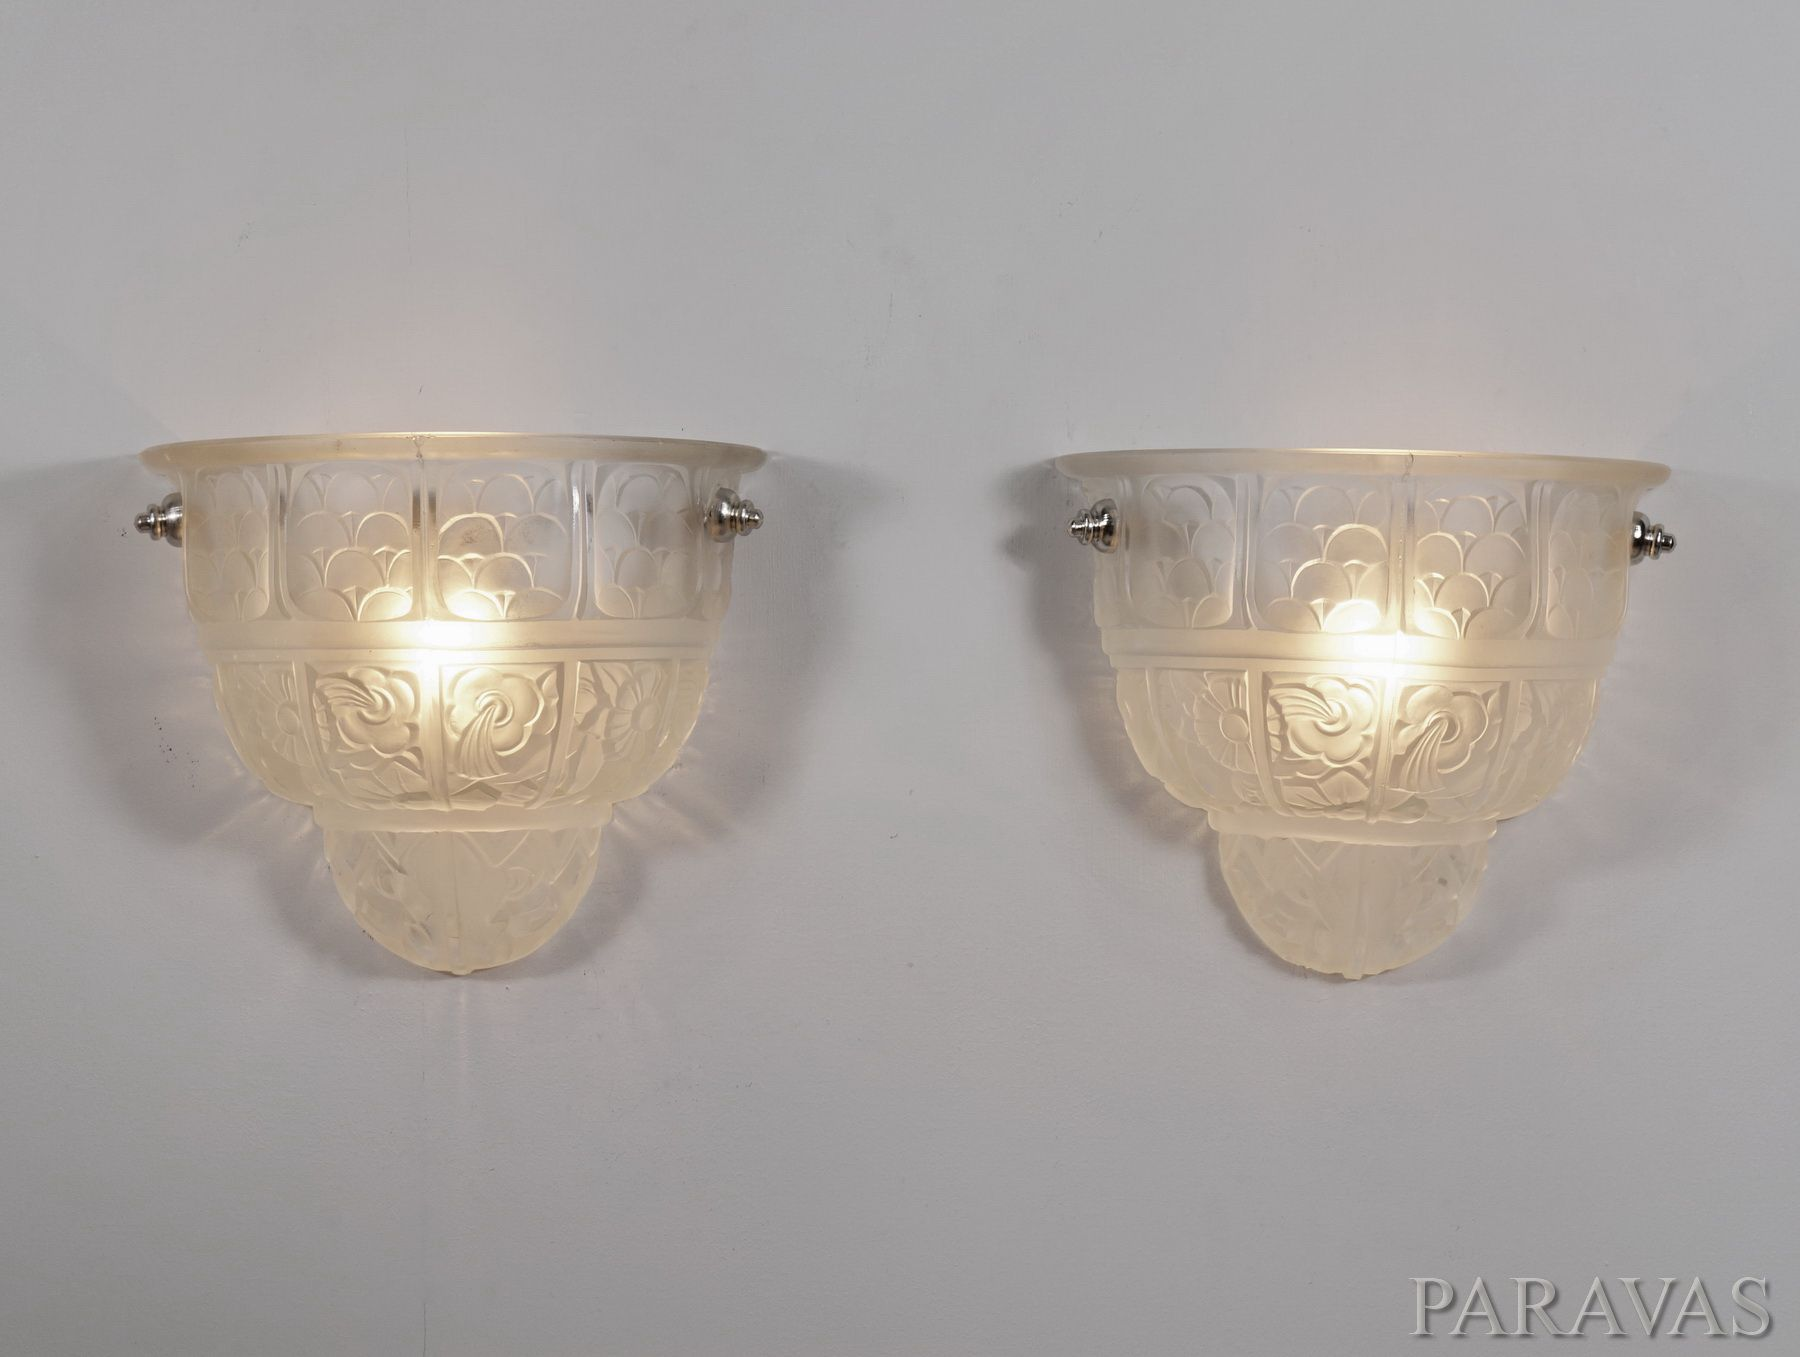 Hettier Vincent Pair Of French Art Deco Wall Sconces 1930 The Paris Based Company H V Used Shades By Verreries De Art Deco Lighting Wall Deco Wall Sconces